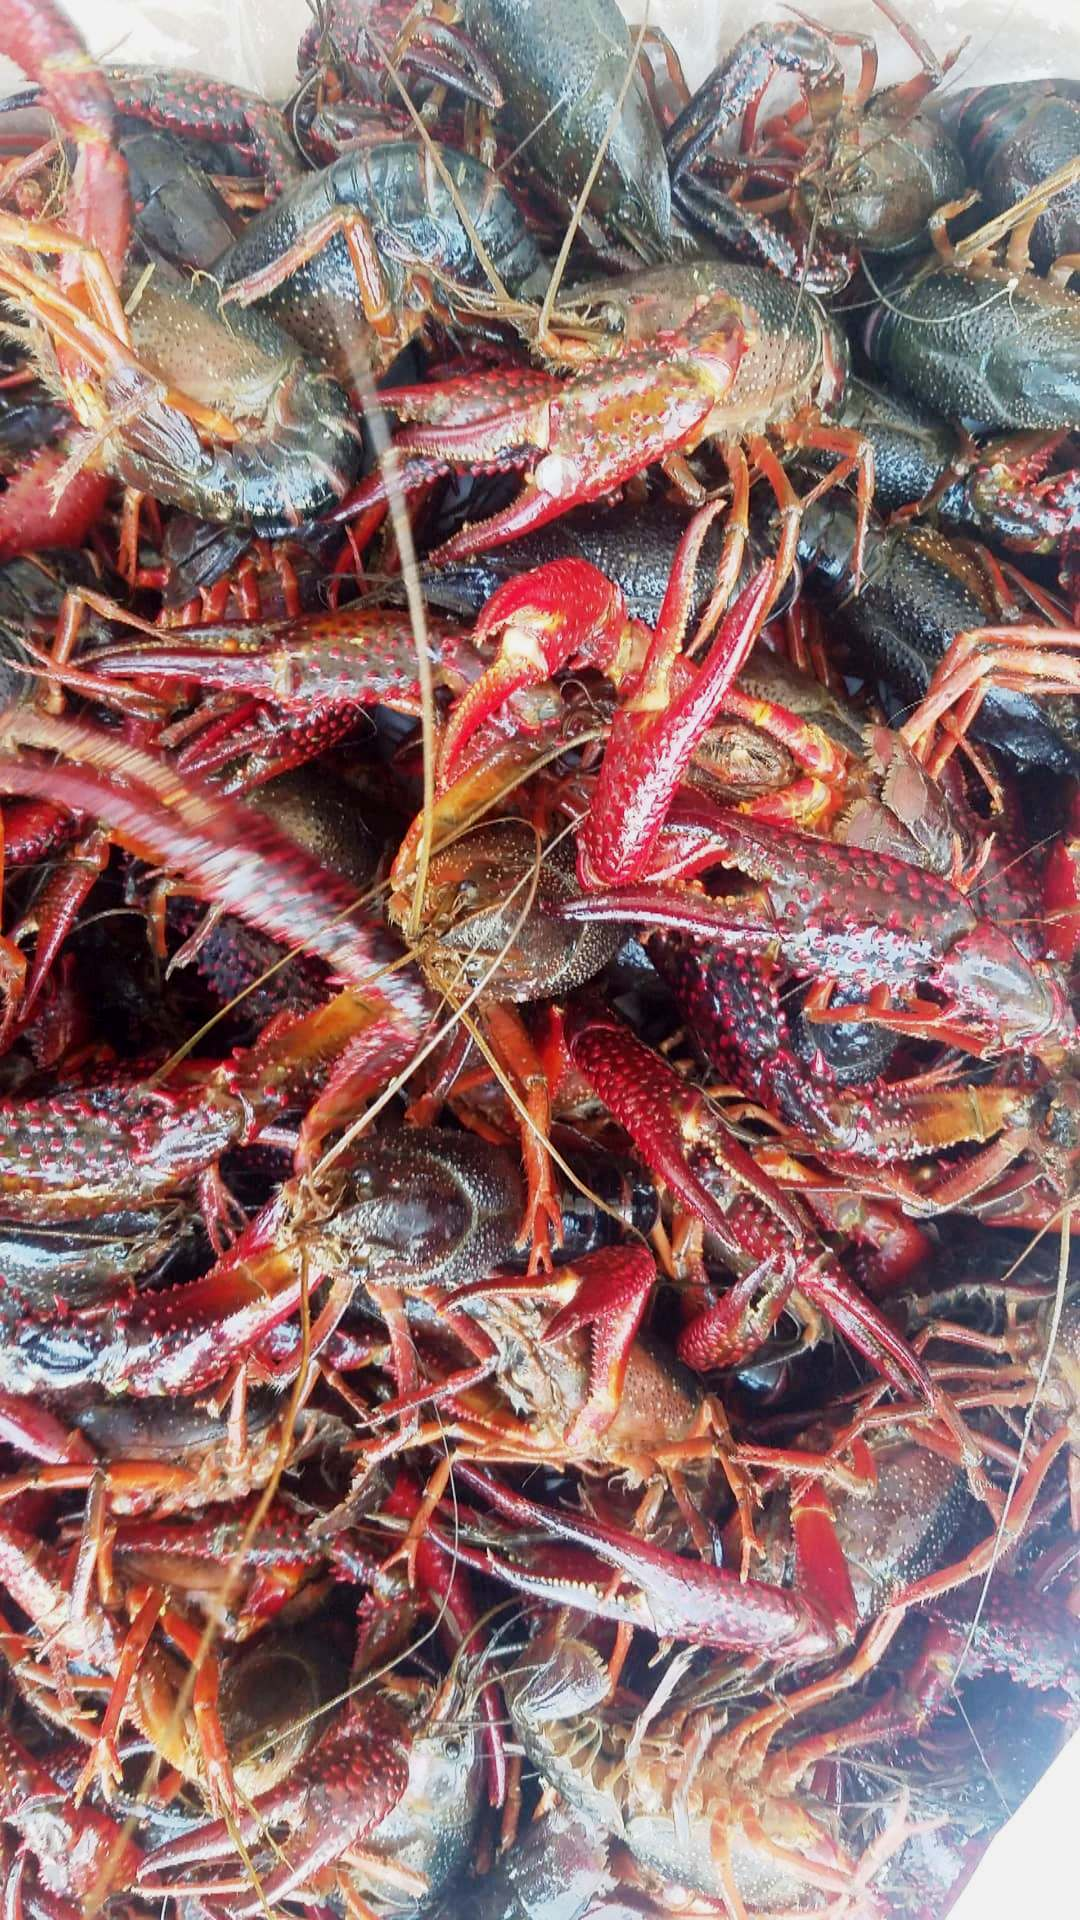 Live Crawfish and Seafood Shipped to Door/Airport